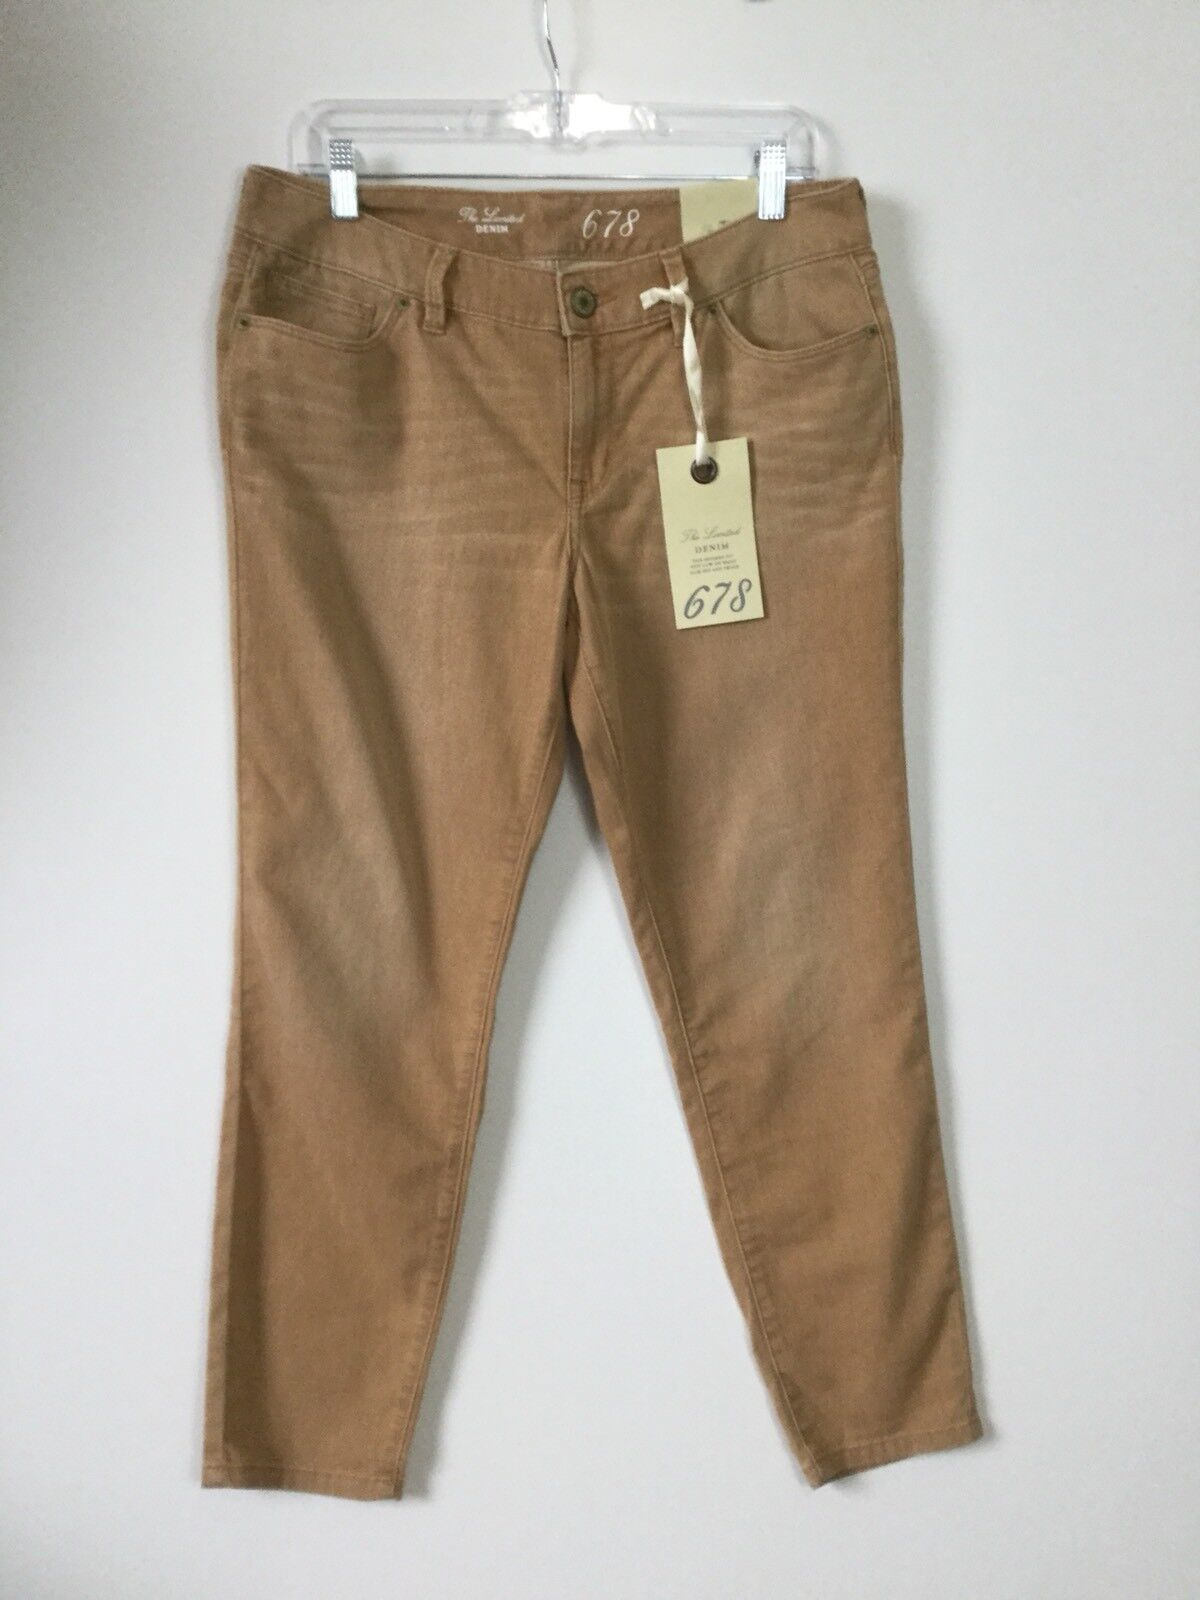 The Limited Denim Jeans Tan Brown Ankle Cotton Stretch Faded Slim 678 Size 12